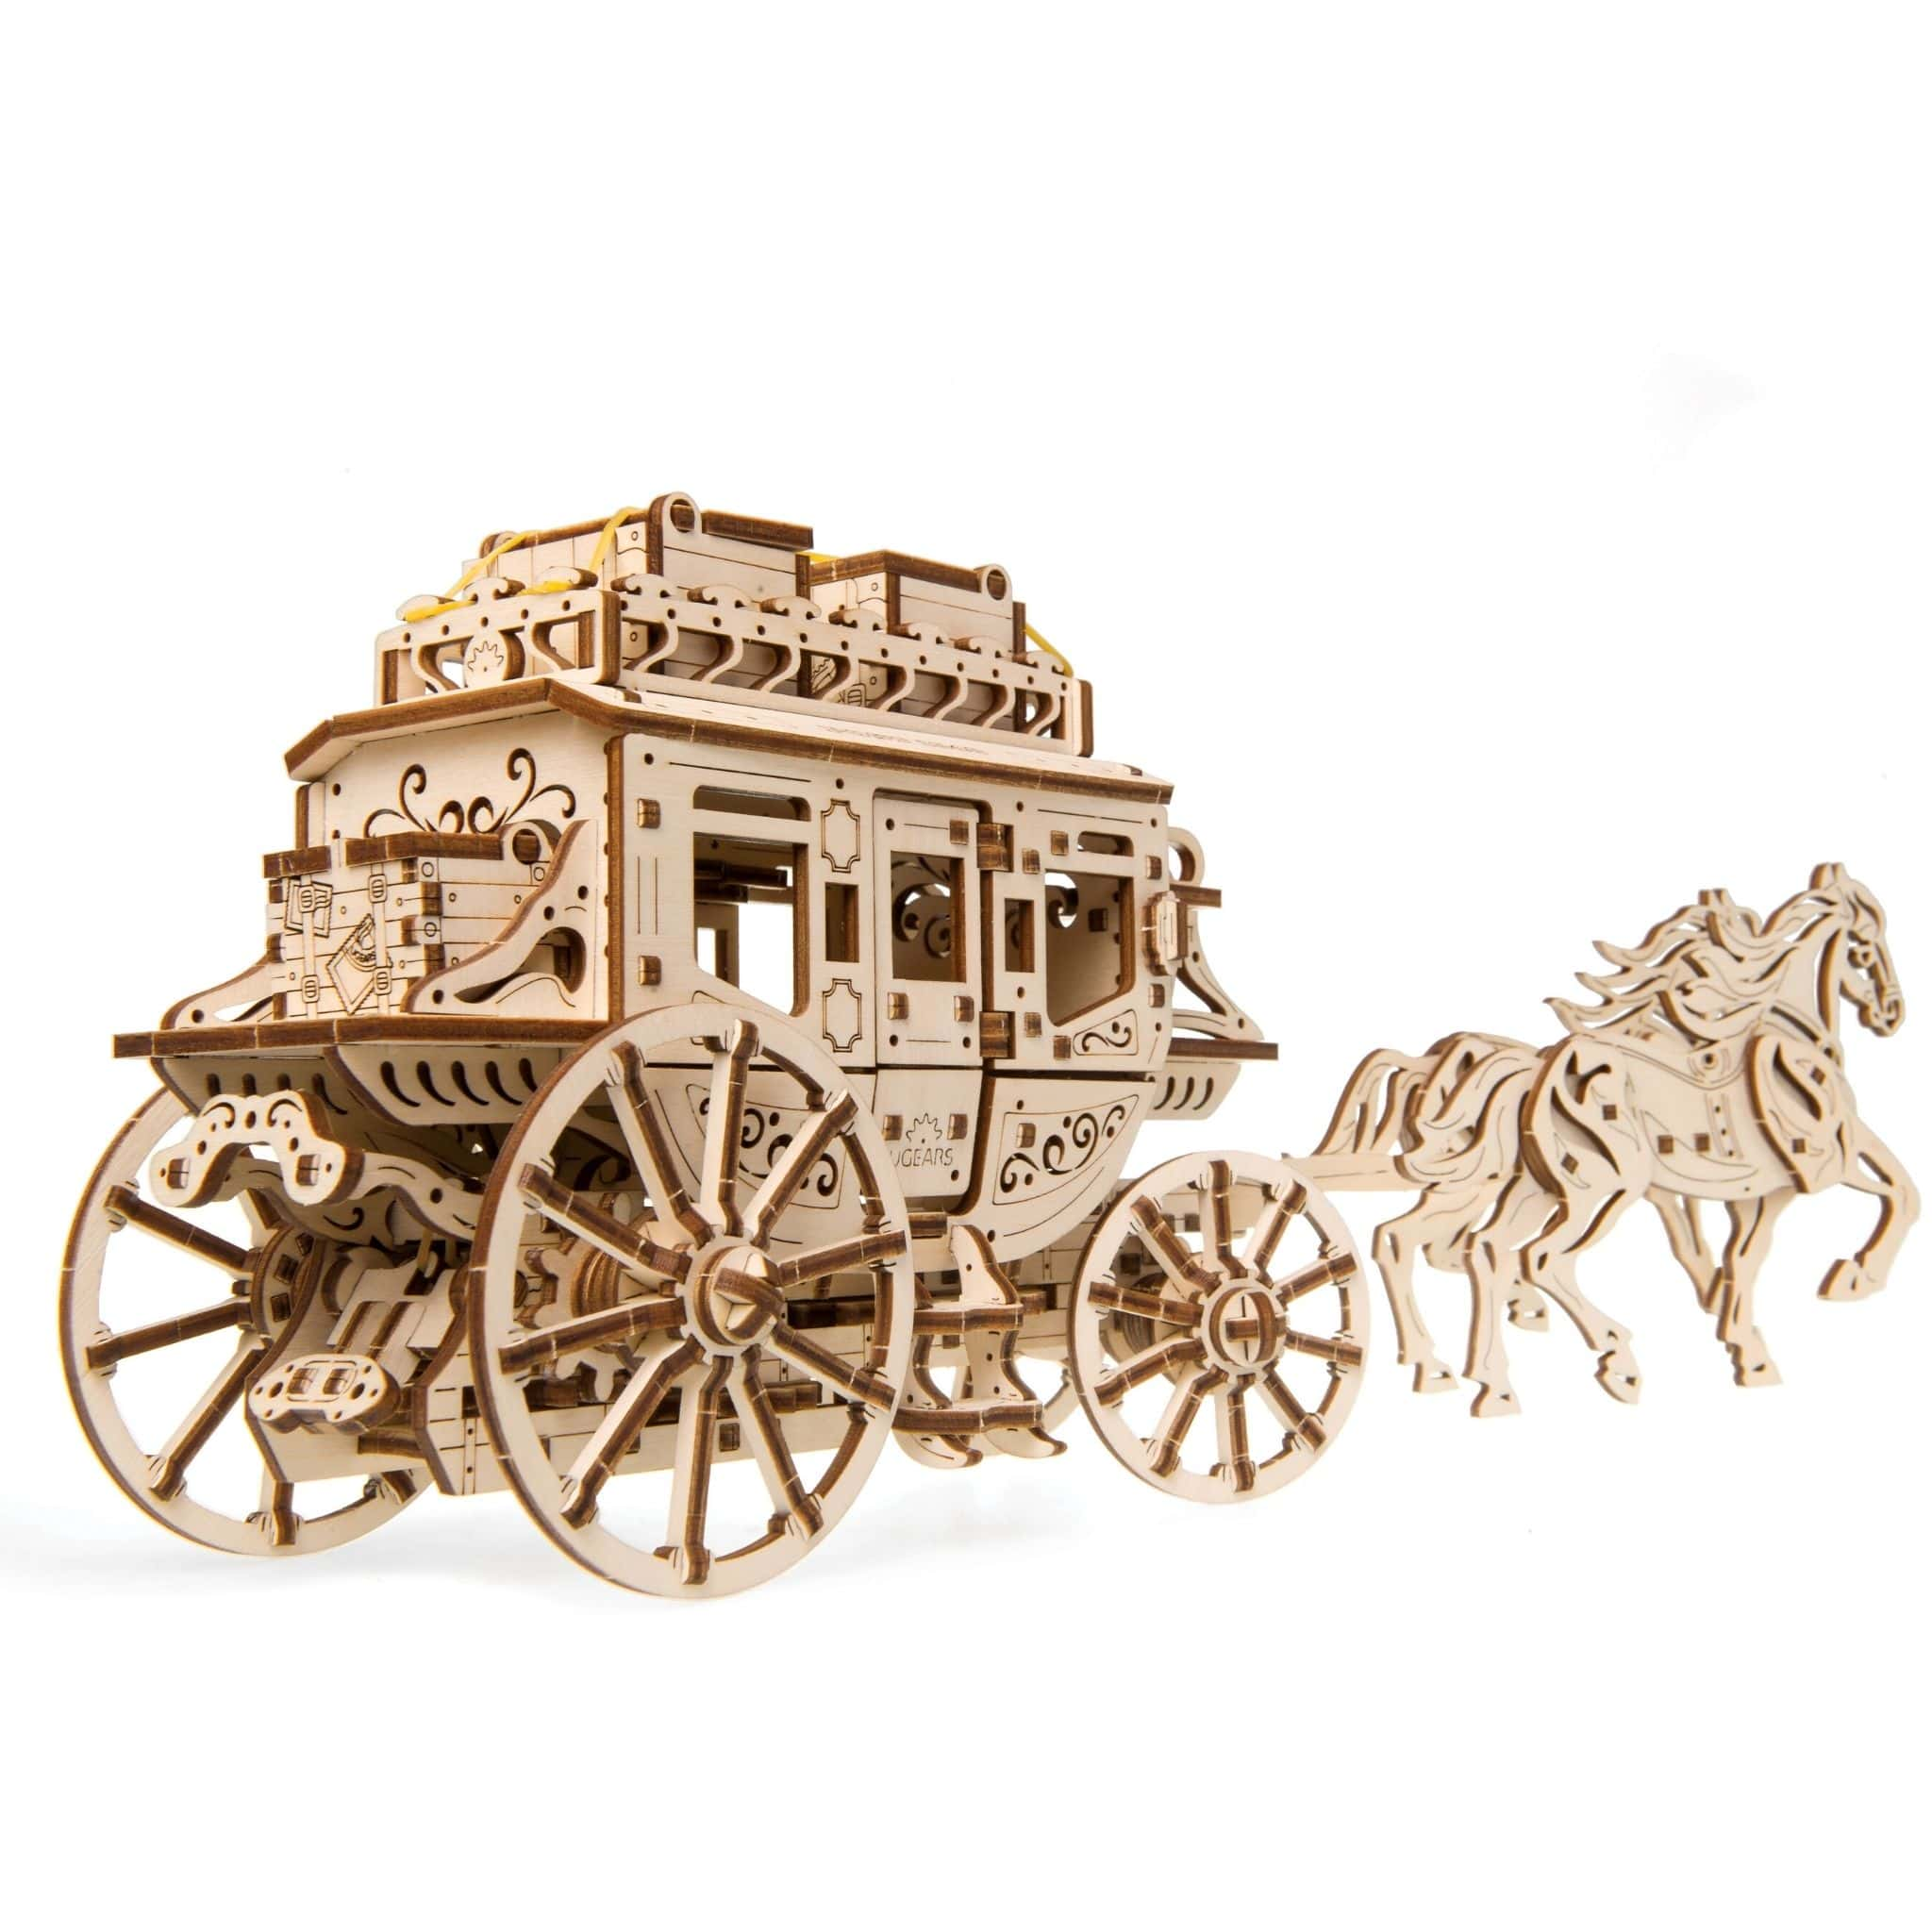 Legendary Stagecoach